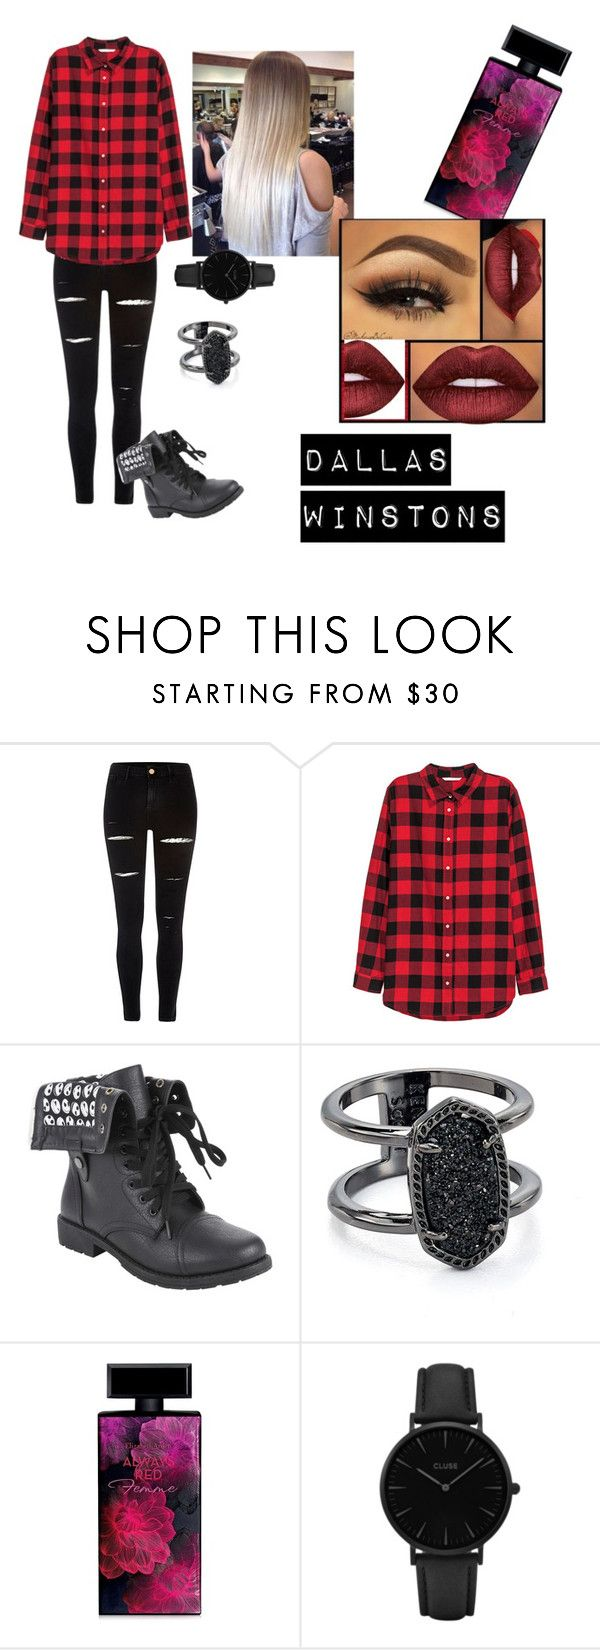 """dallas winston"" by gracie01531 ❤ liked on Polyvore featuring River Island, H&M, Kendra Scott, Elizabeth Arden, CLUSE and Lime Crime"